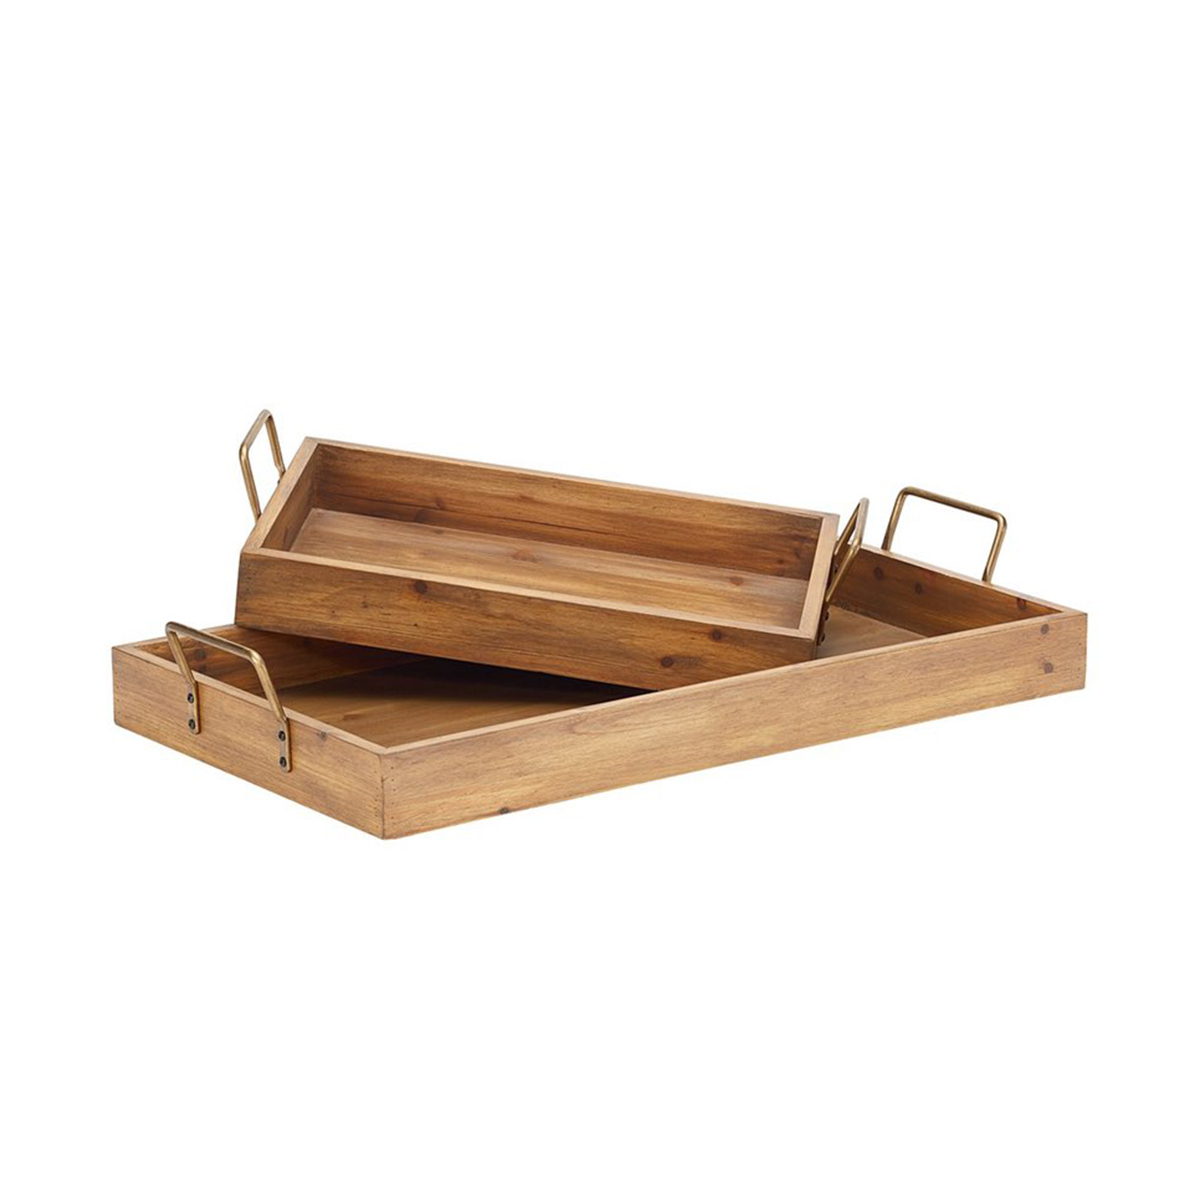 Set of two wooden trays by Magnolia Home photo